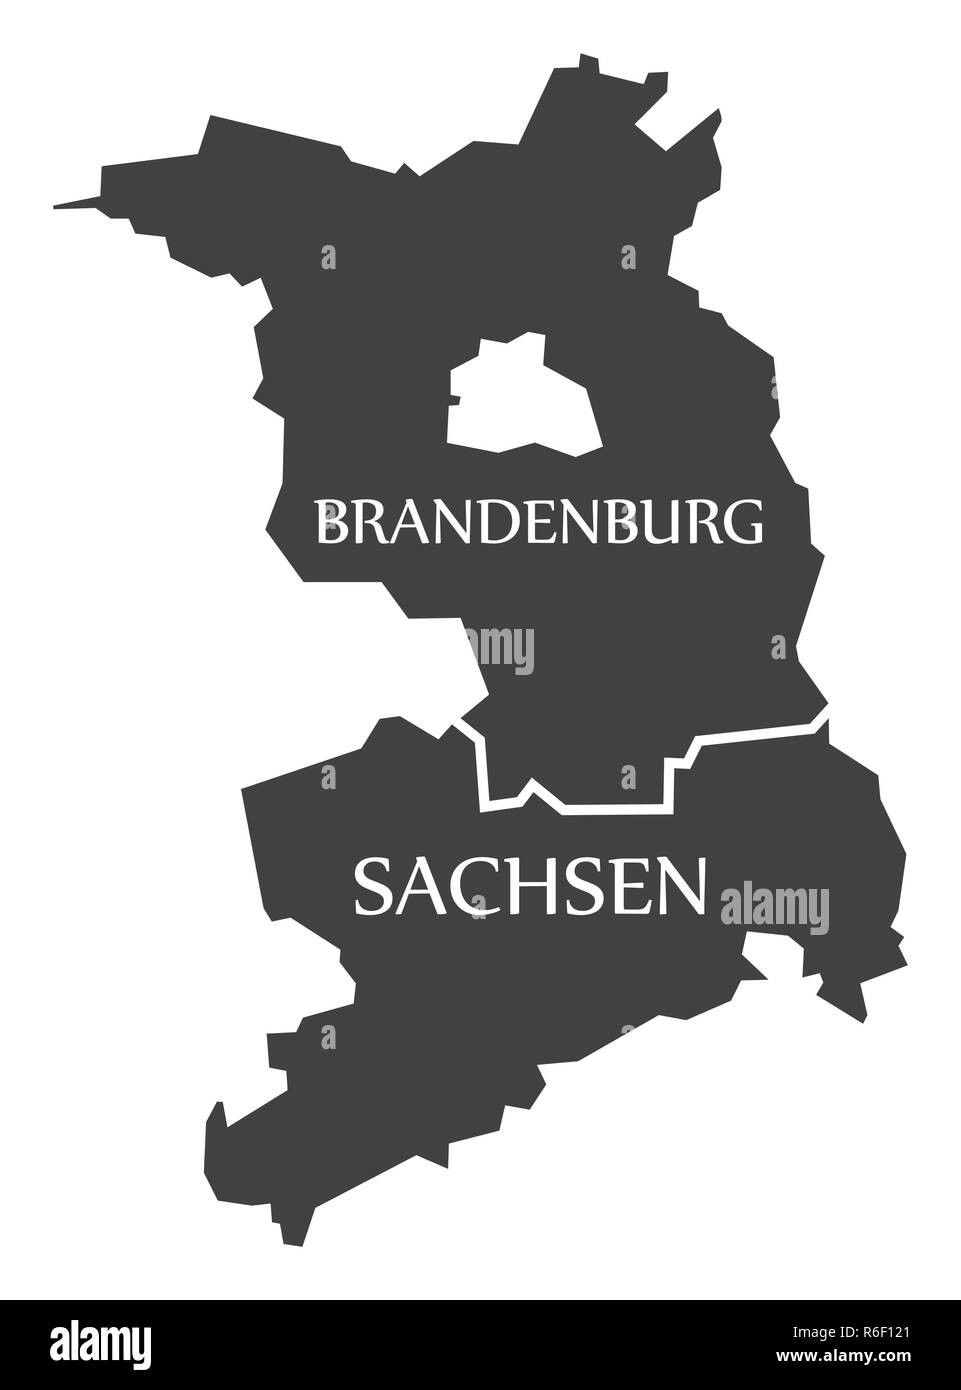 Brandenburg - Saxony federal states map of Germany black with titles - Stock Image